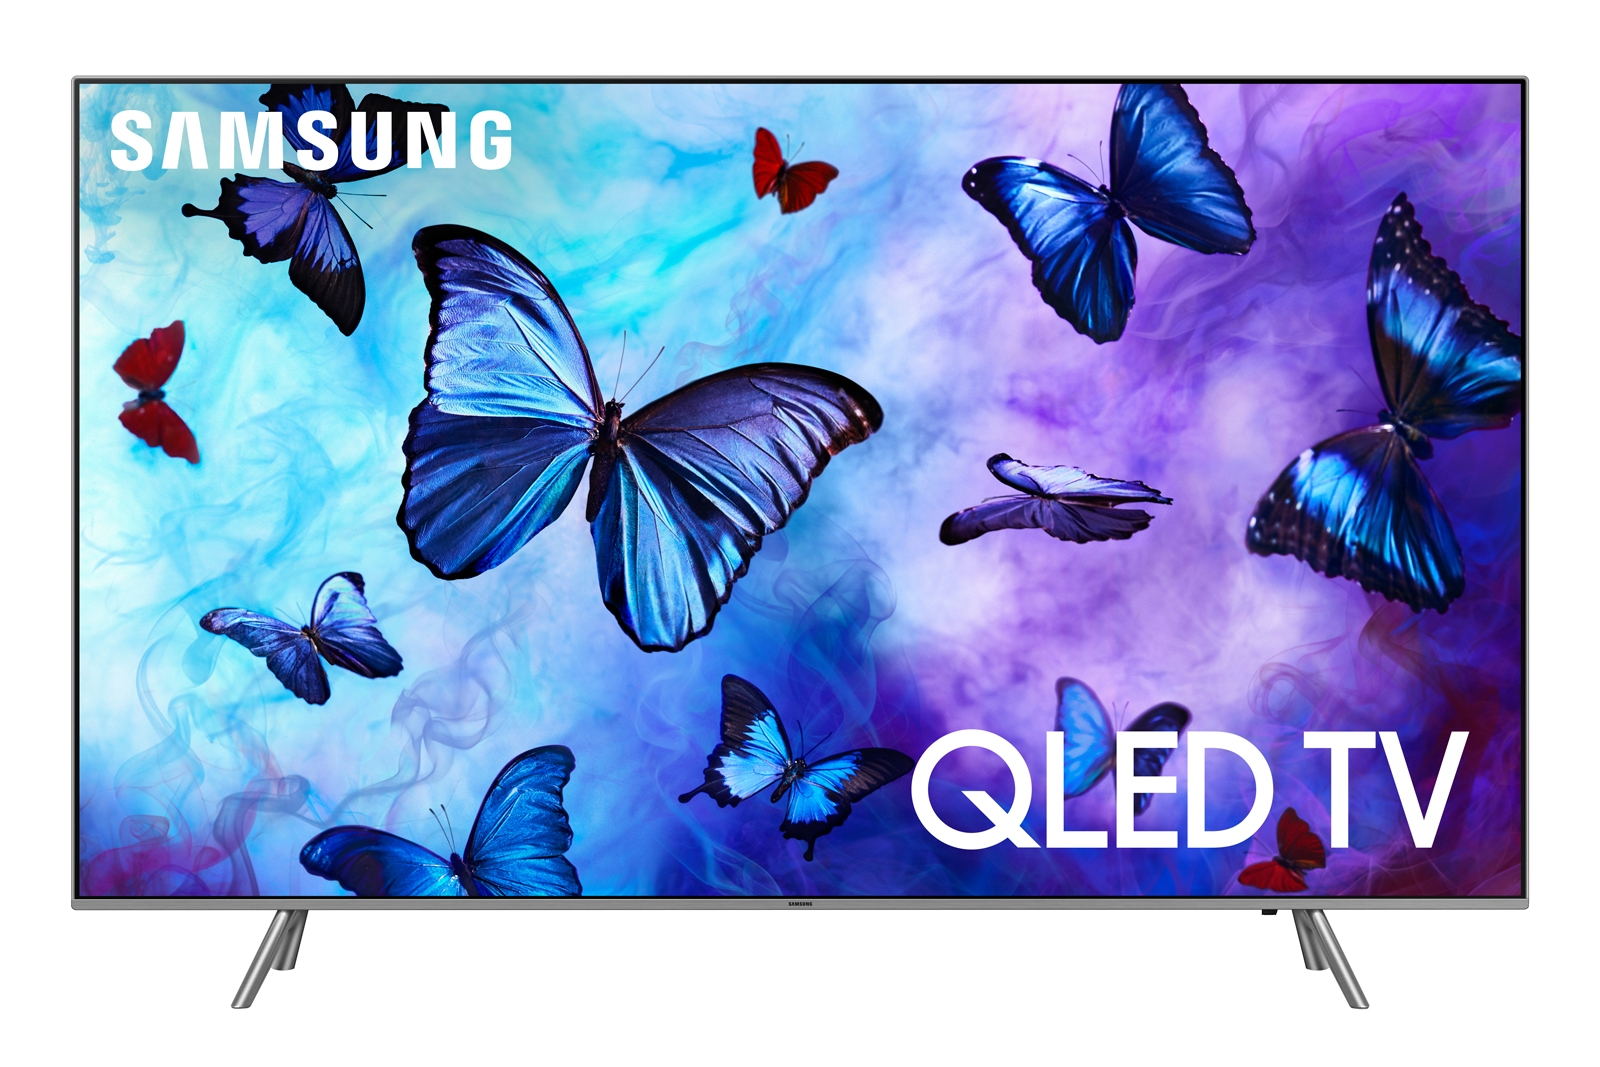 2018 Qled Tv Q6fn Series Owner Information Support Samsung Us Hdmi Arc Wiring Diagram